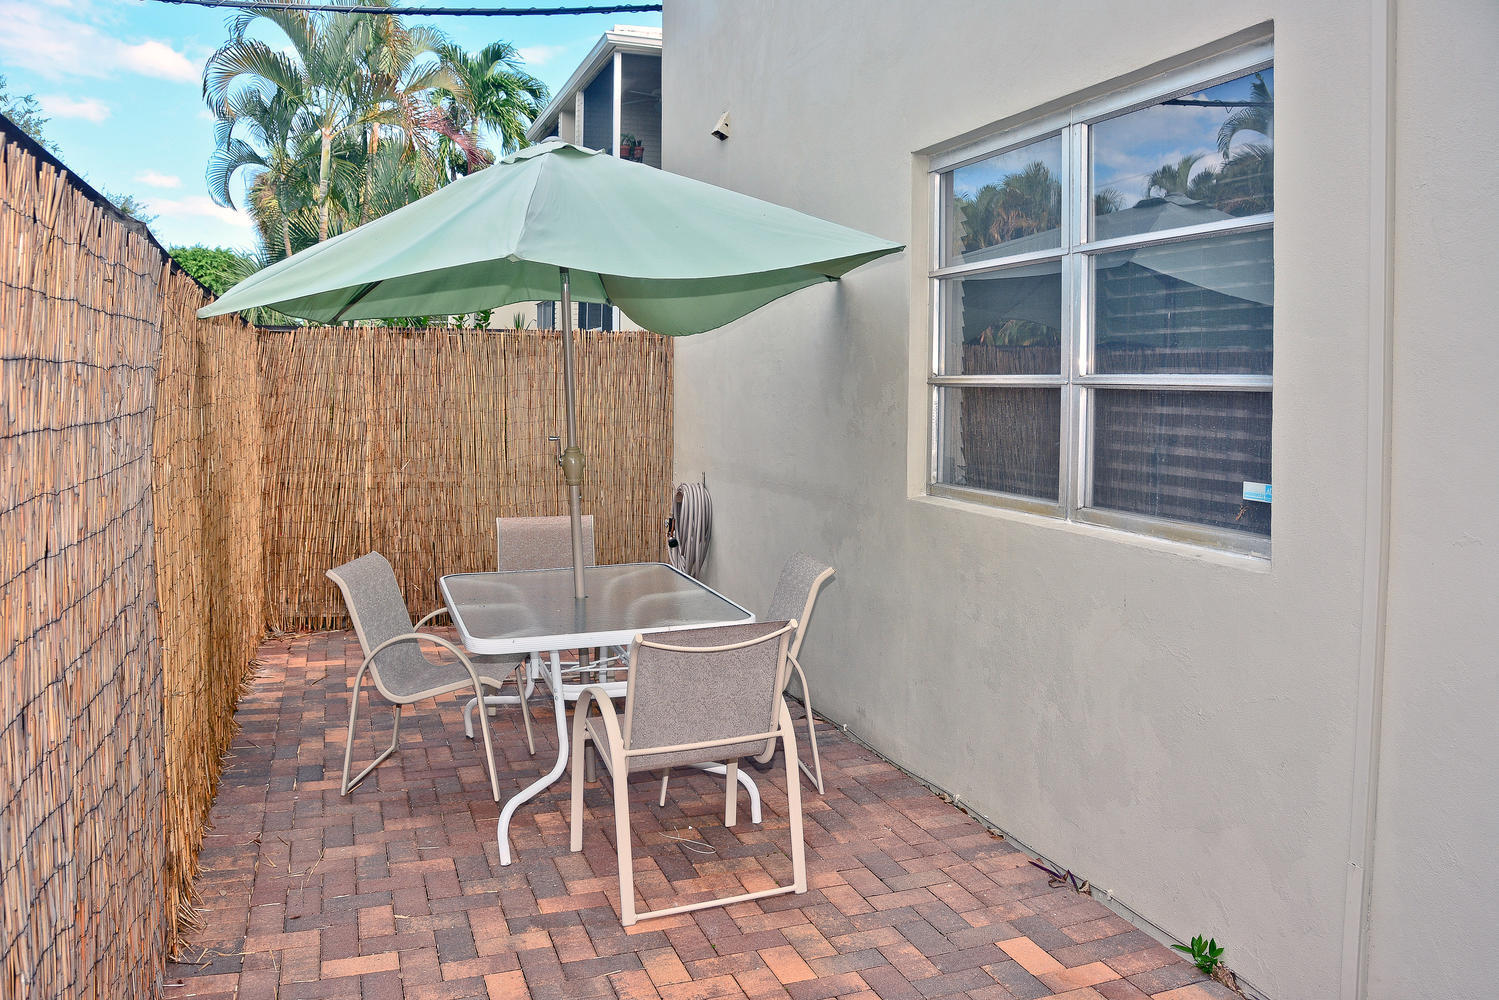 hk porch with patio table